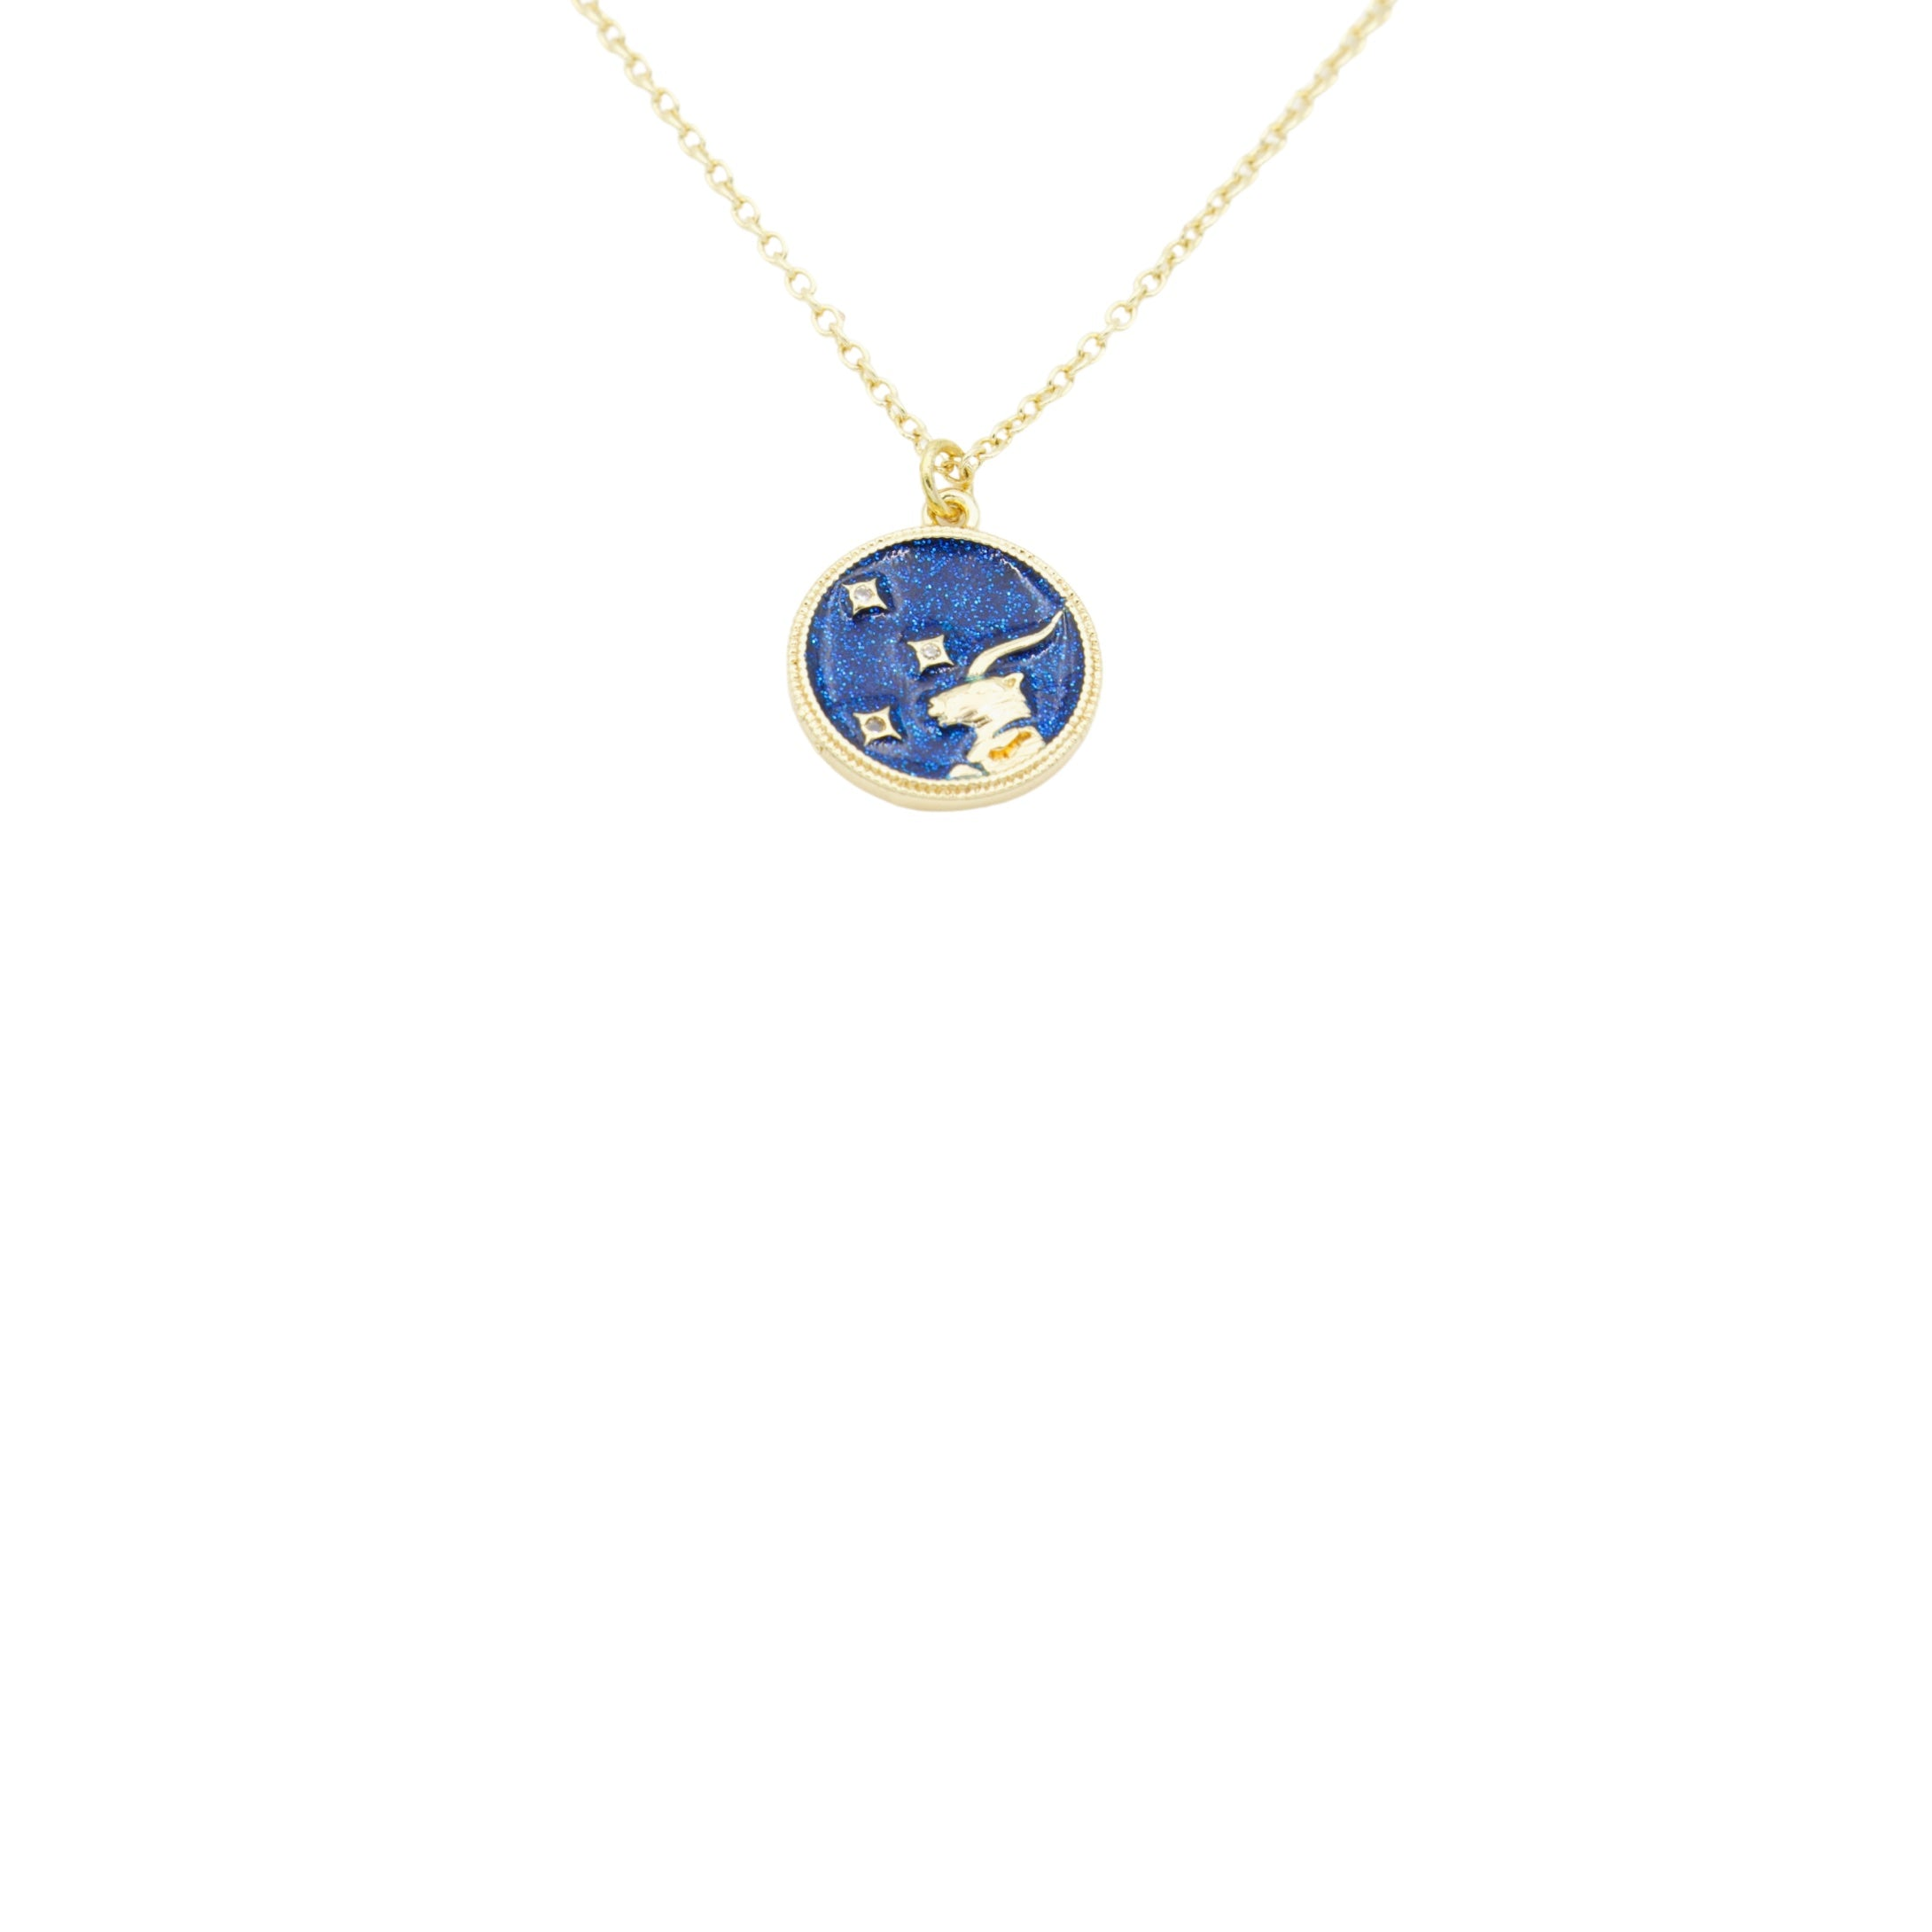 AW Boutique's Zodiac Astro Coin is a dainty pendant full of sparkle and shine.  This piece adds a pop of colour to your everyday wear and at 18 inches is a great length to mix and layer your other chains with.  Proudly wear either your own star sign or the star sign of a loved one close to your heart.  Zodiac shown is Capricorn.